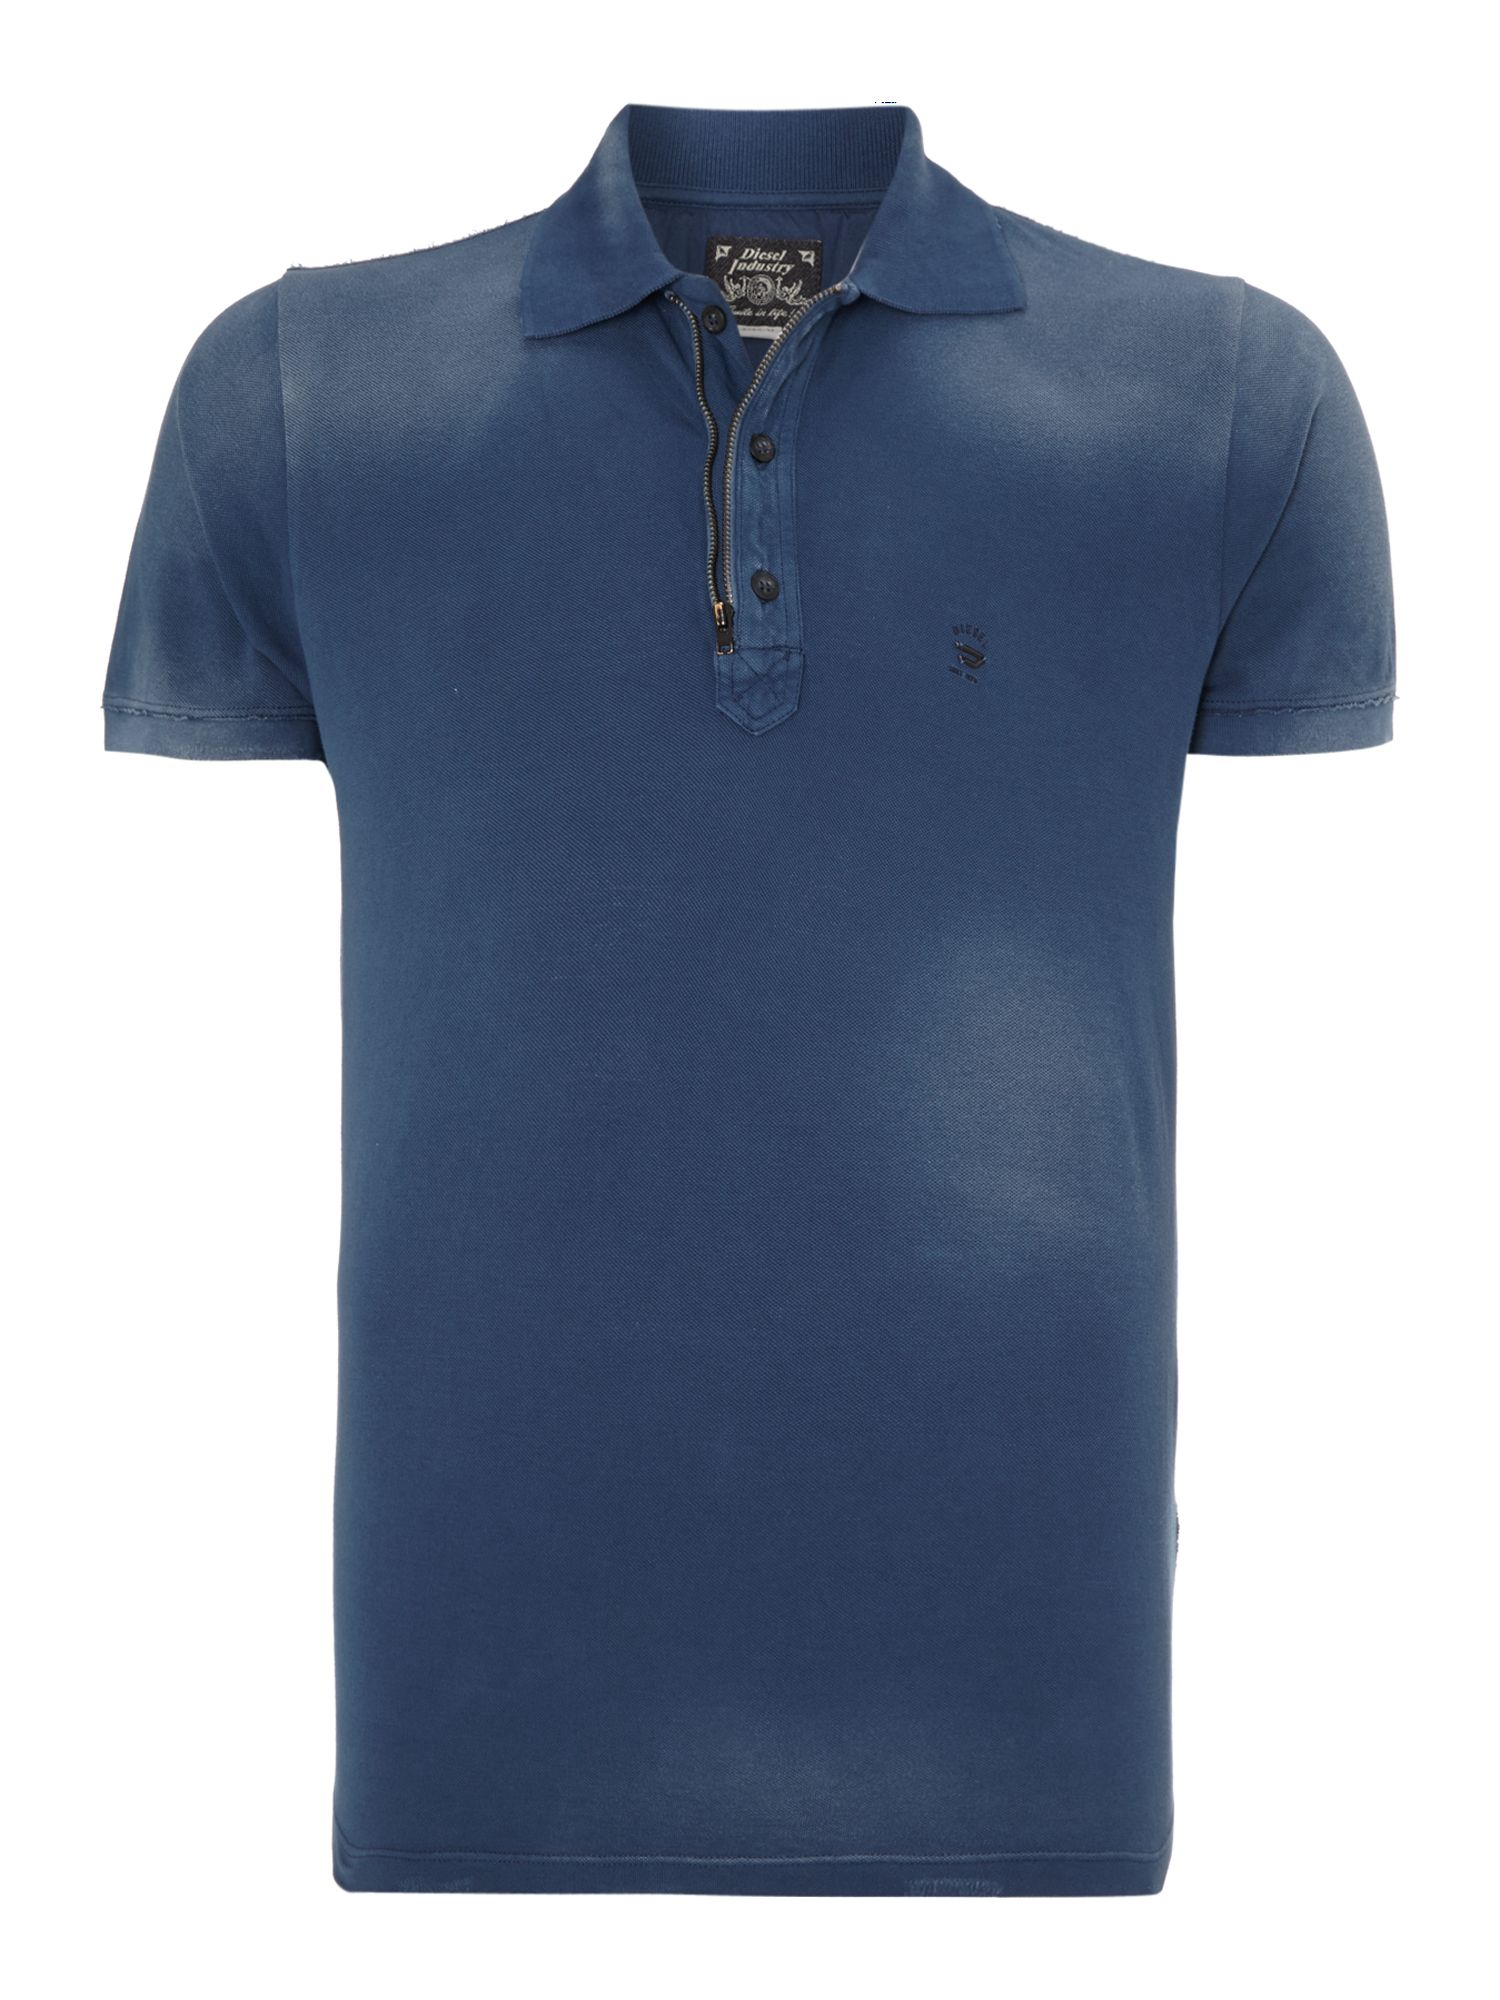 Zip collar polo shirt